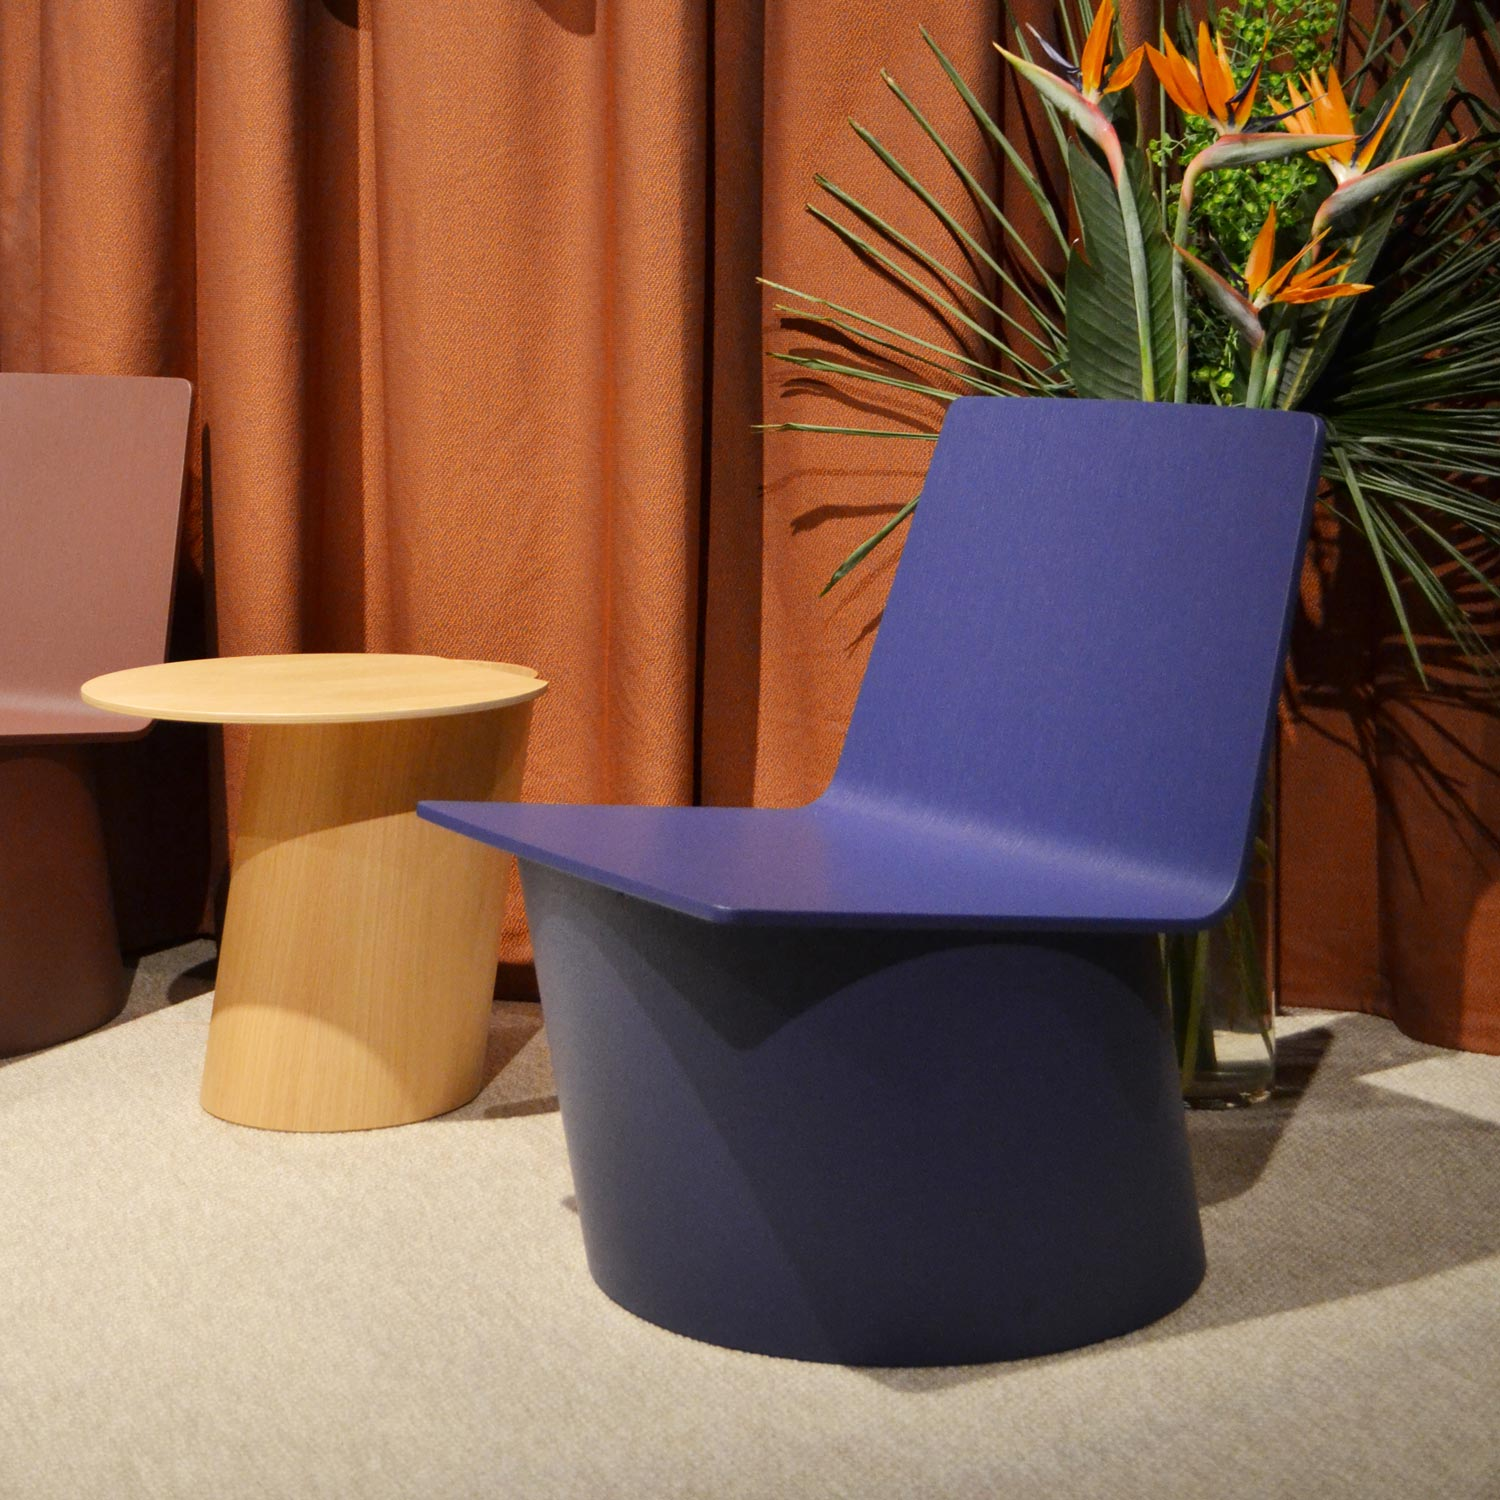 Casum Trends Salone del Mobile 2019. Lounge chairs and side table at Crassevig booth